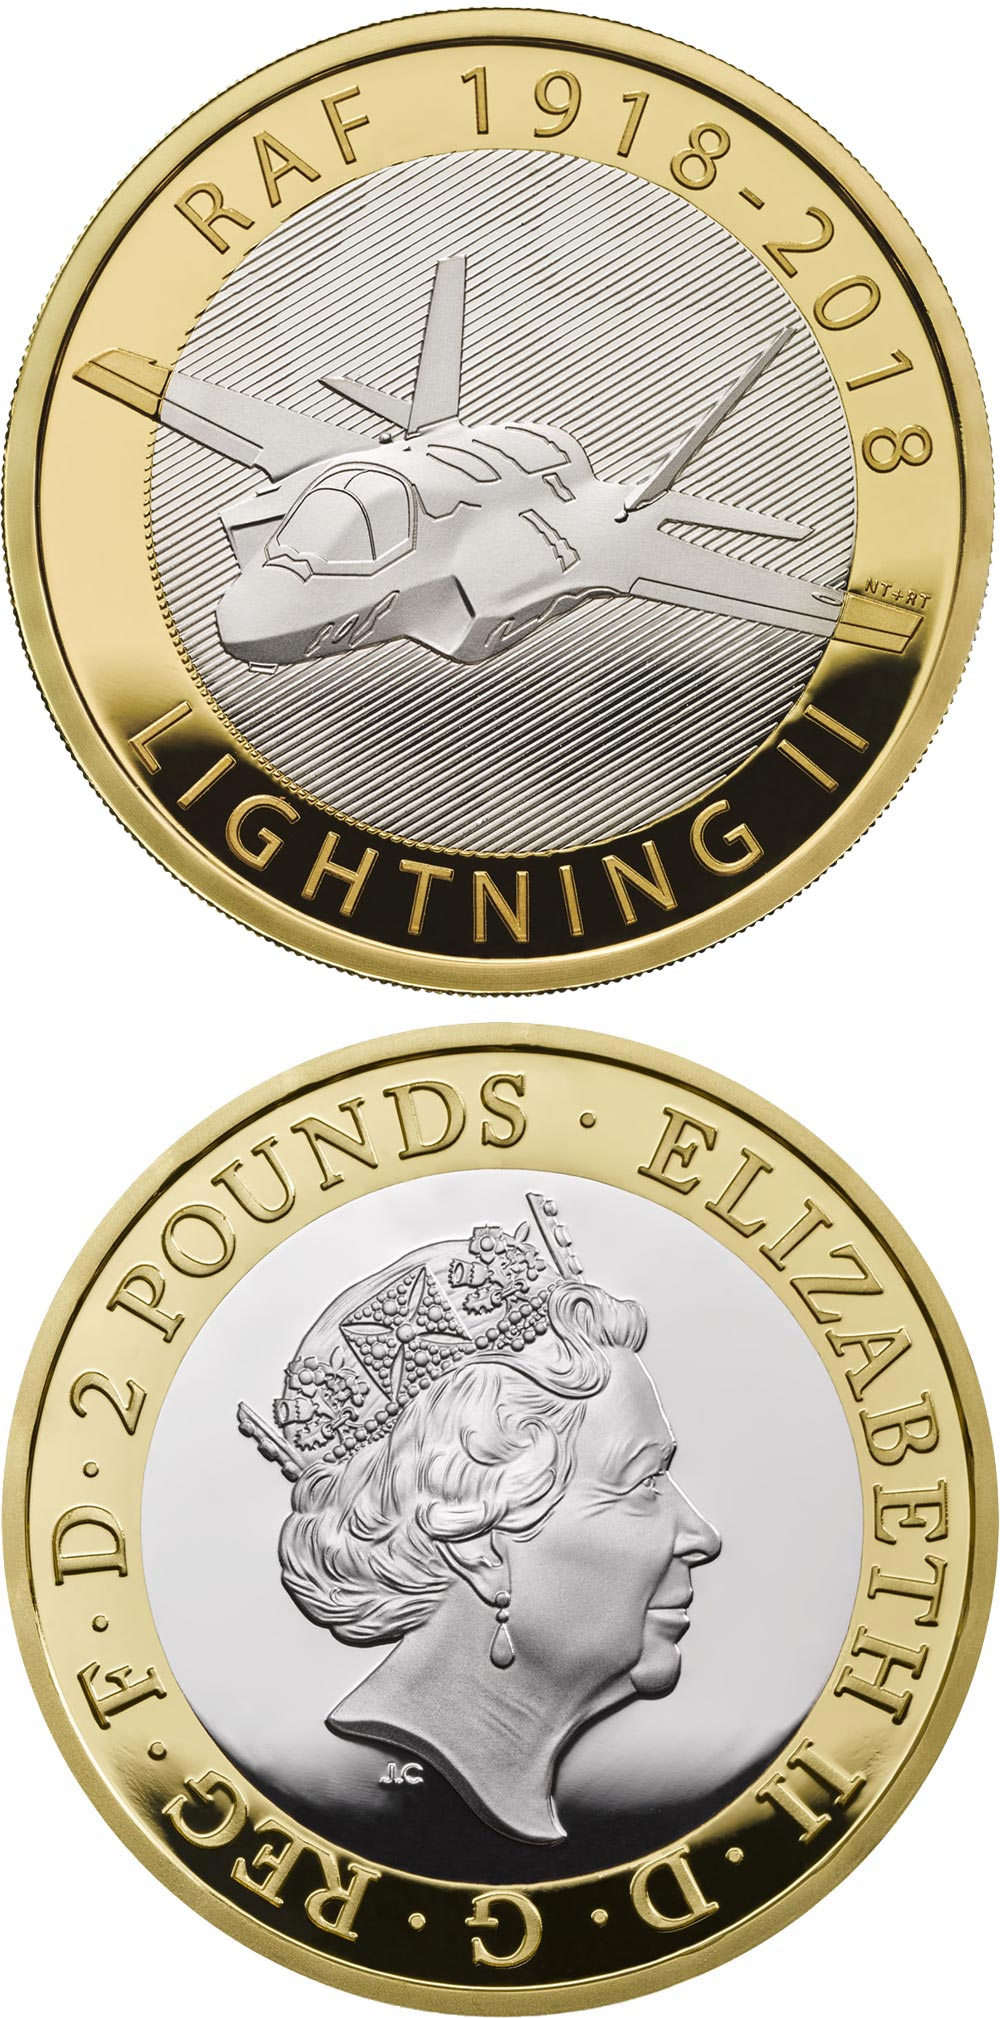 Image of 2 pounds coin – RAF Centenary Lightning II | United Kingdom 2018.  The Bimetal: CuNi, nordic gold coin is of Proof, BU quality.